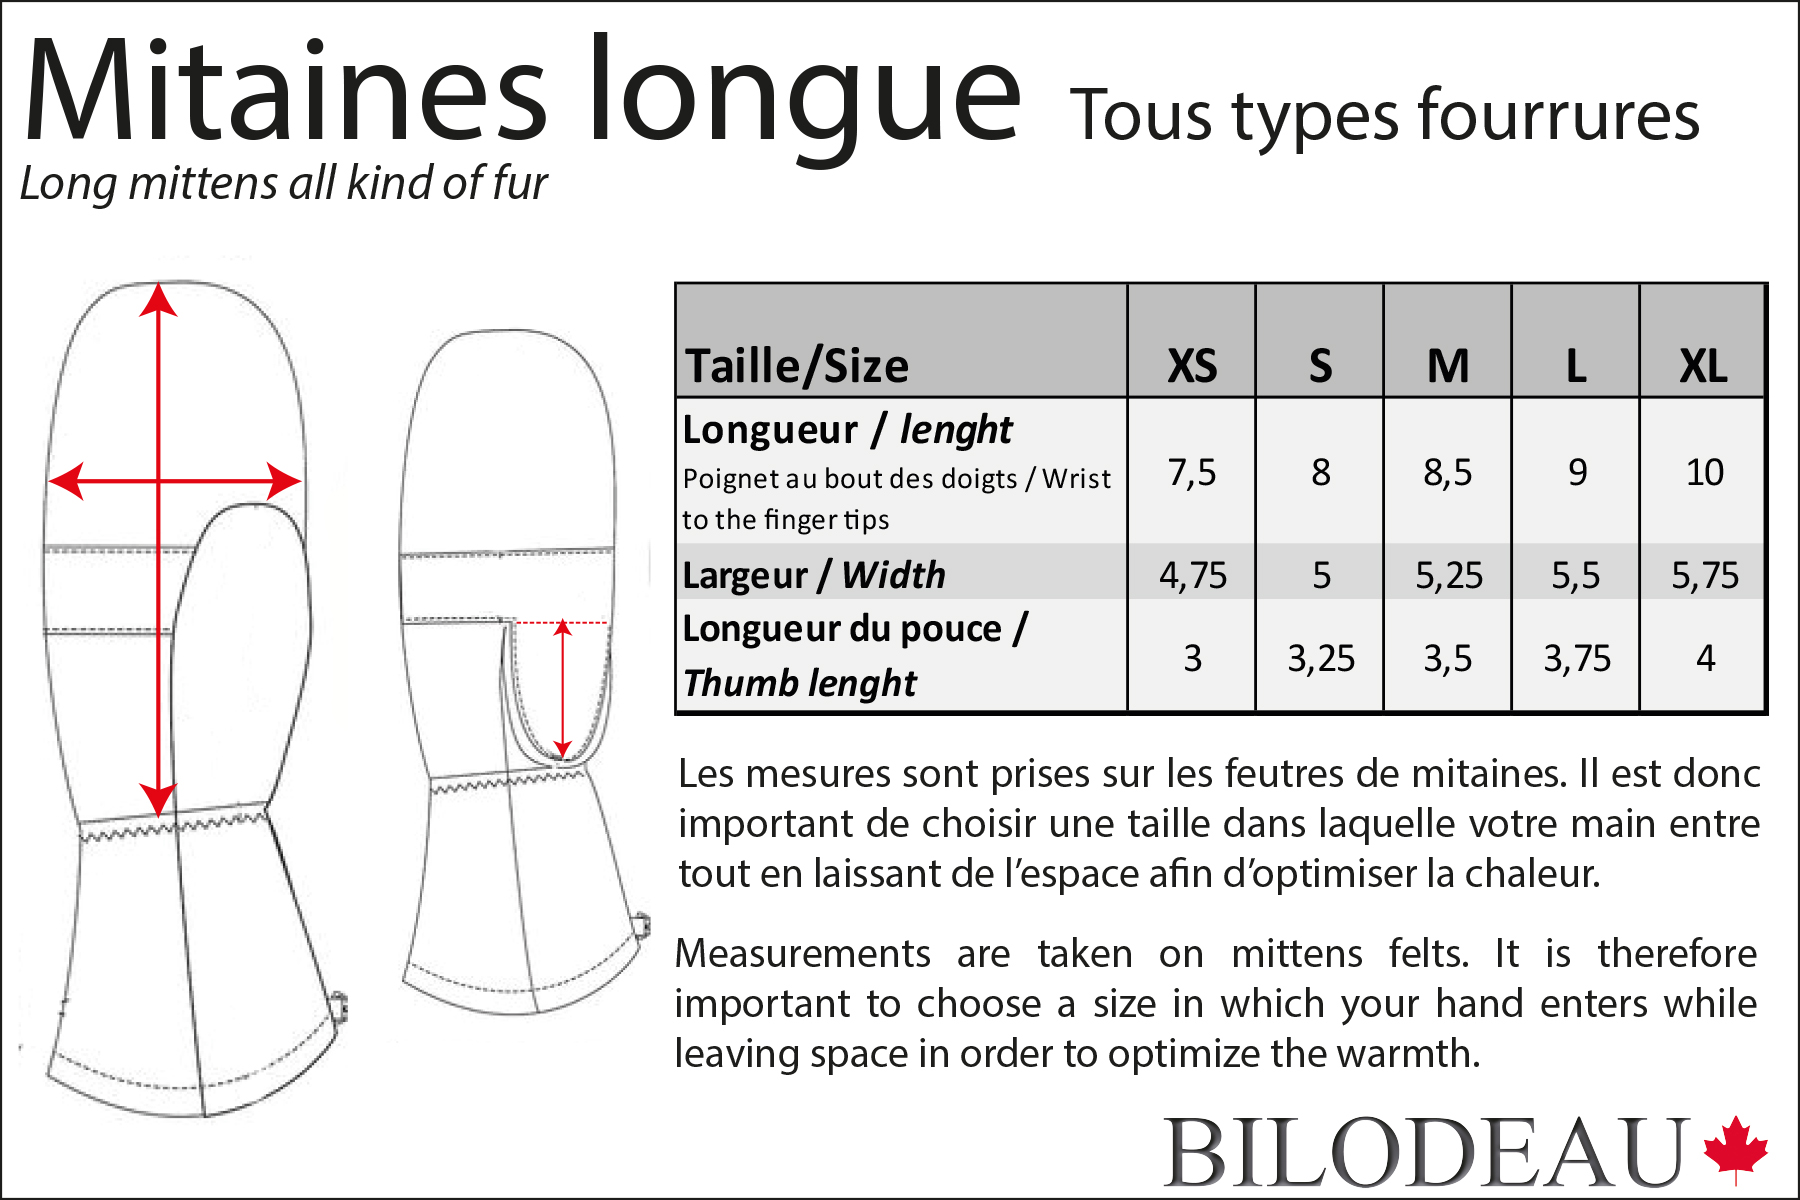 Mitaines longues